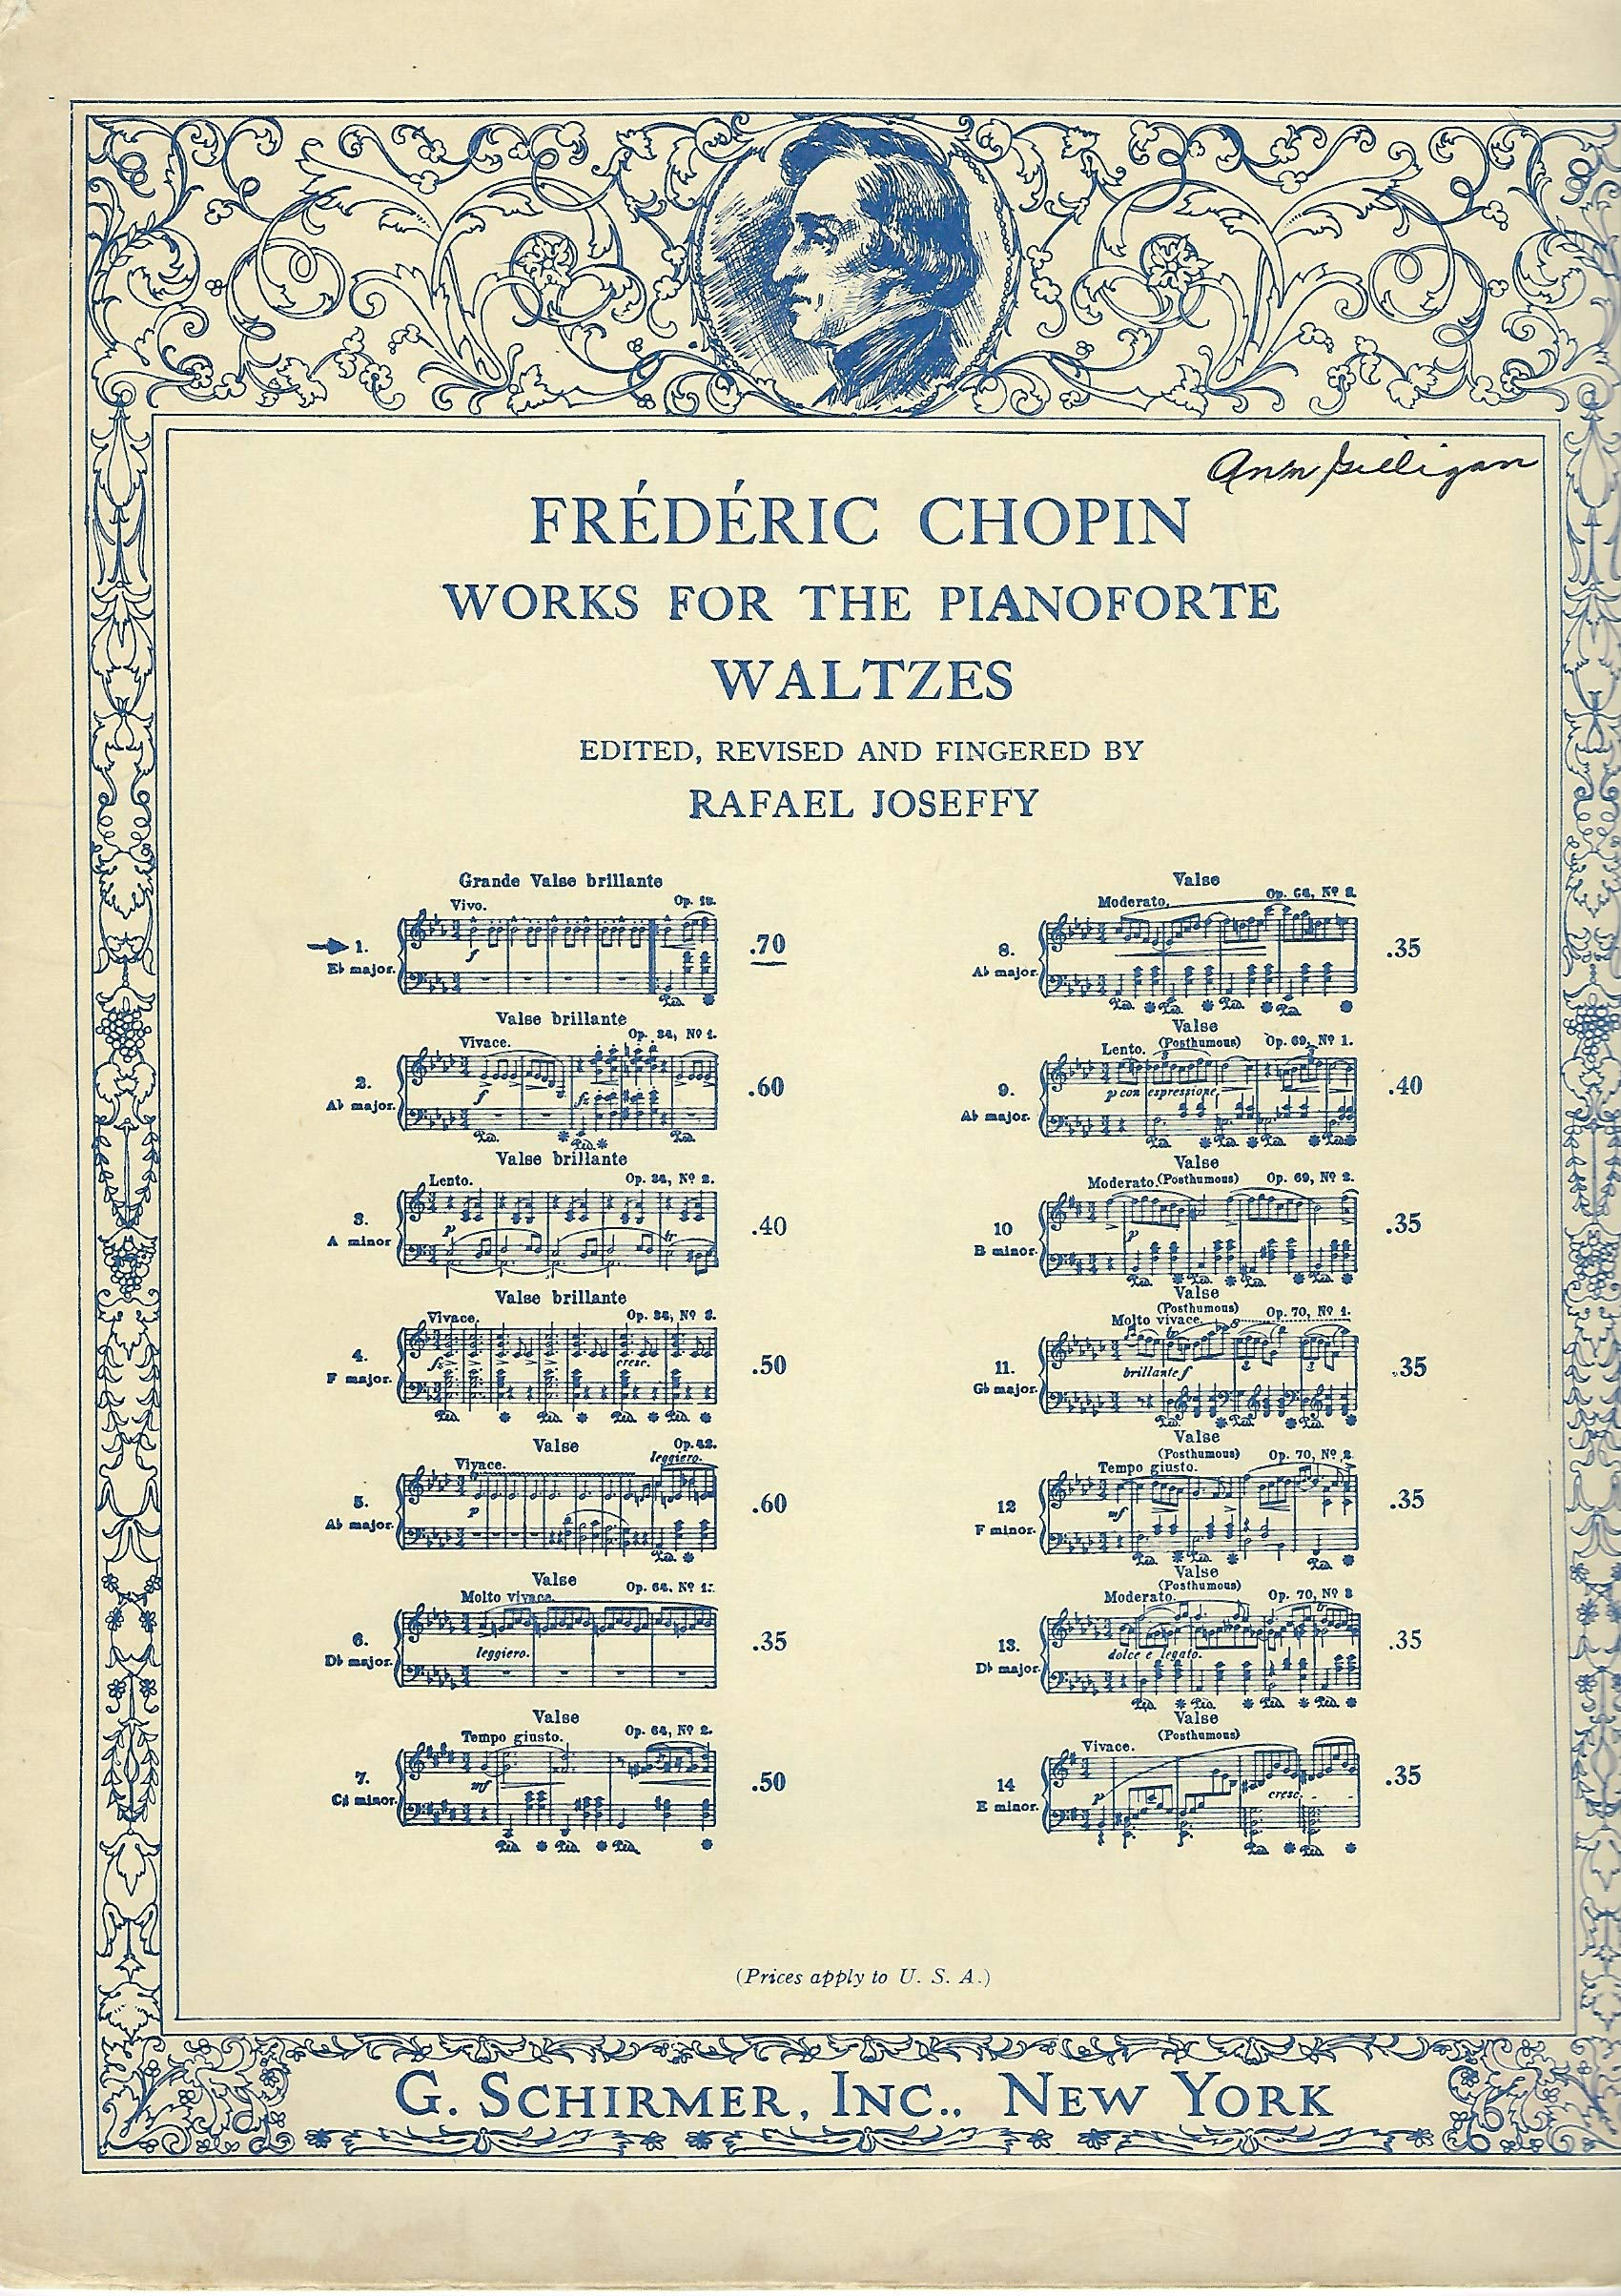 Frederic Chopin Works for the Pianoforte Waltzes, Grande